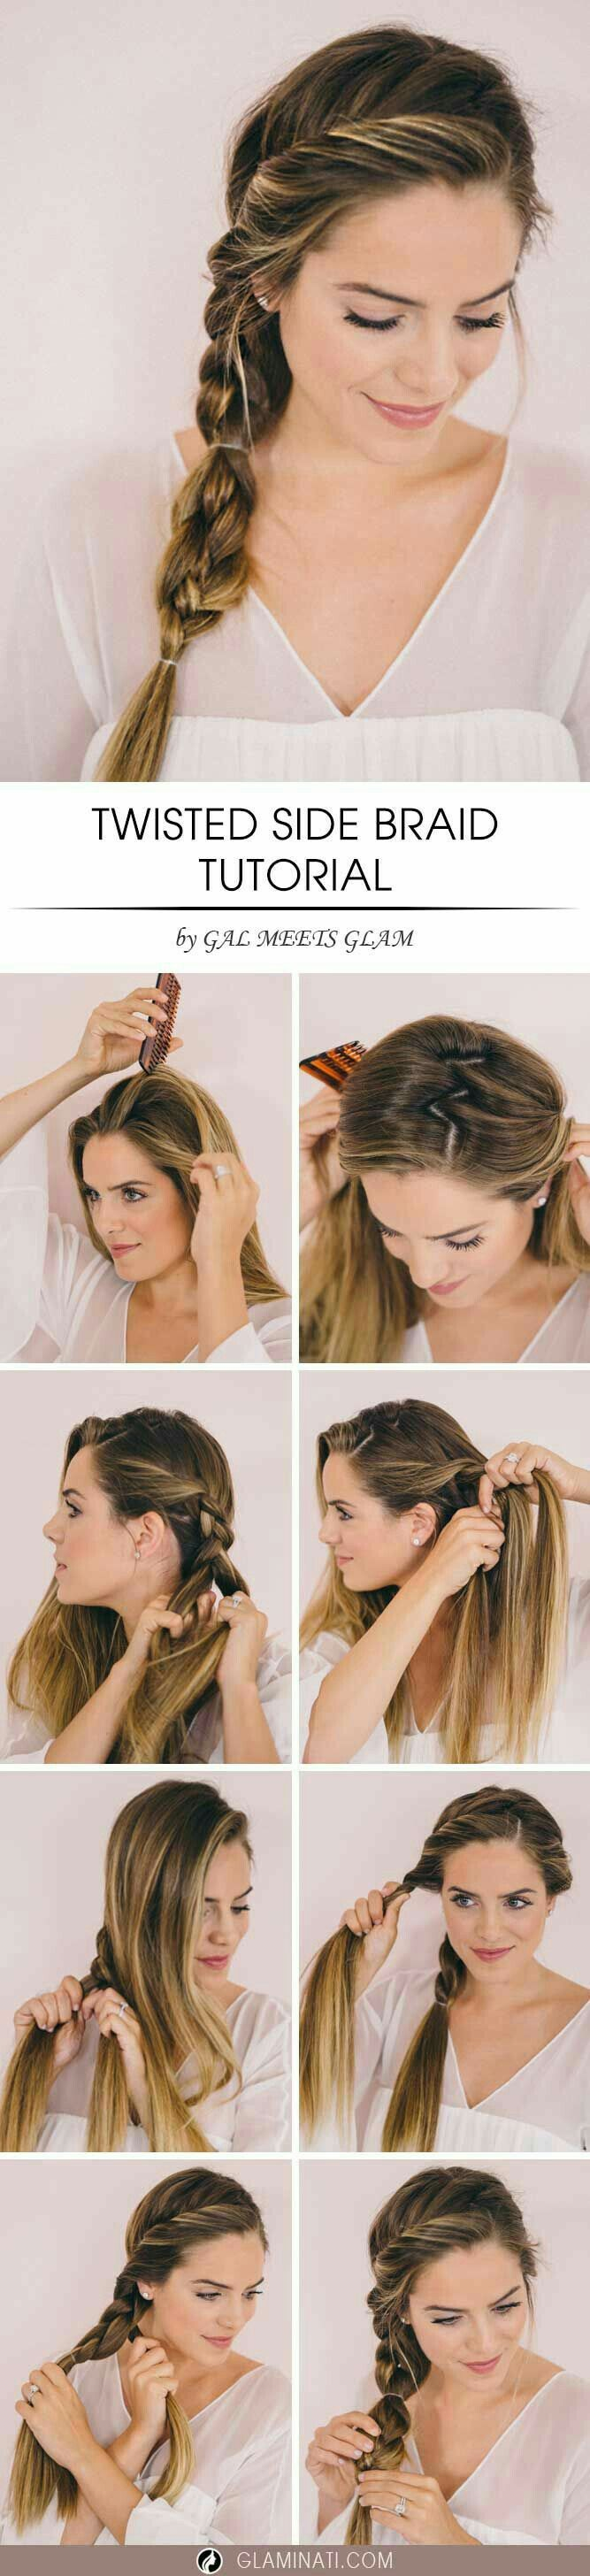 164 best Hairstyles for Long Hair images on Pinterest